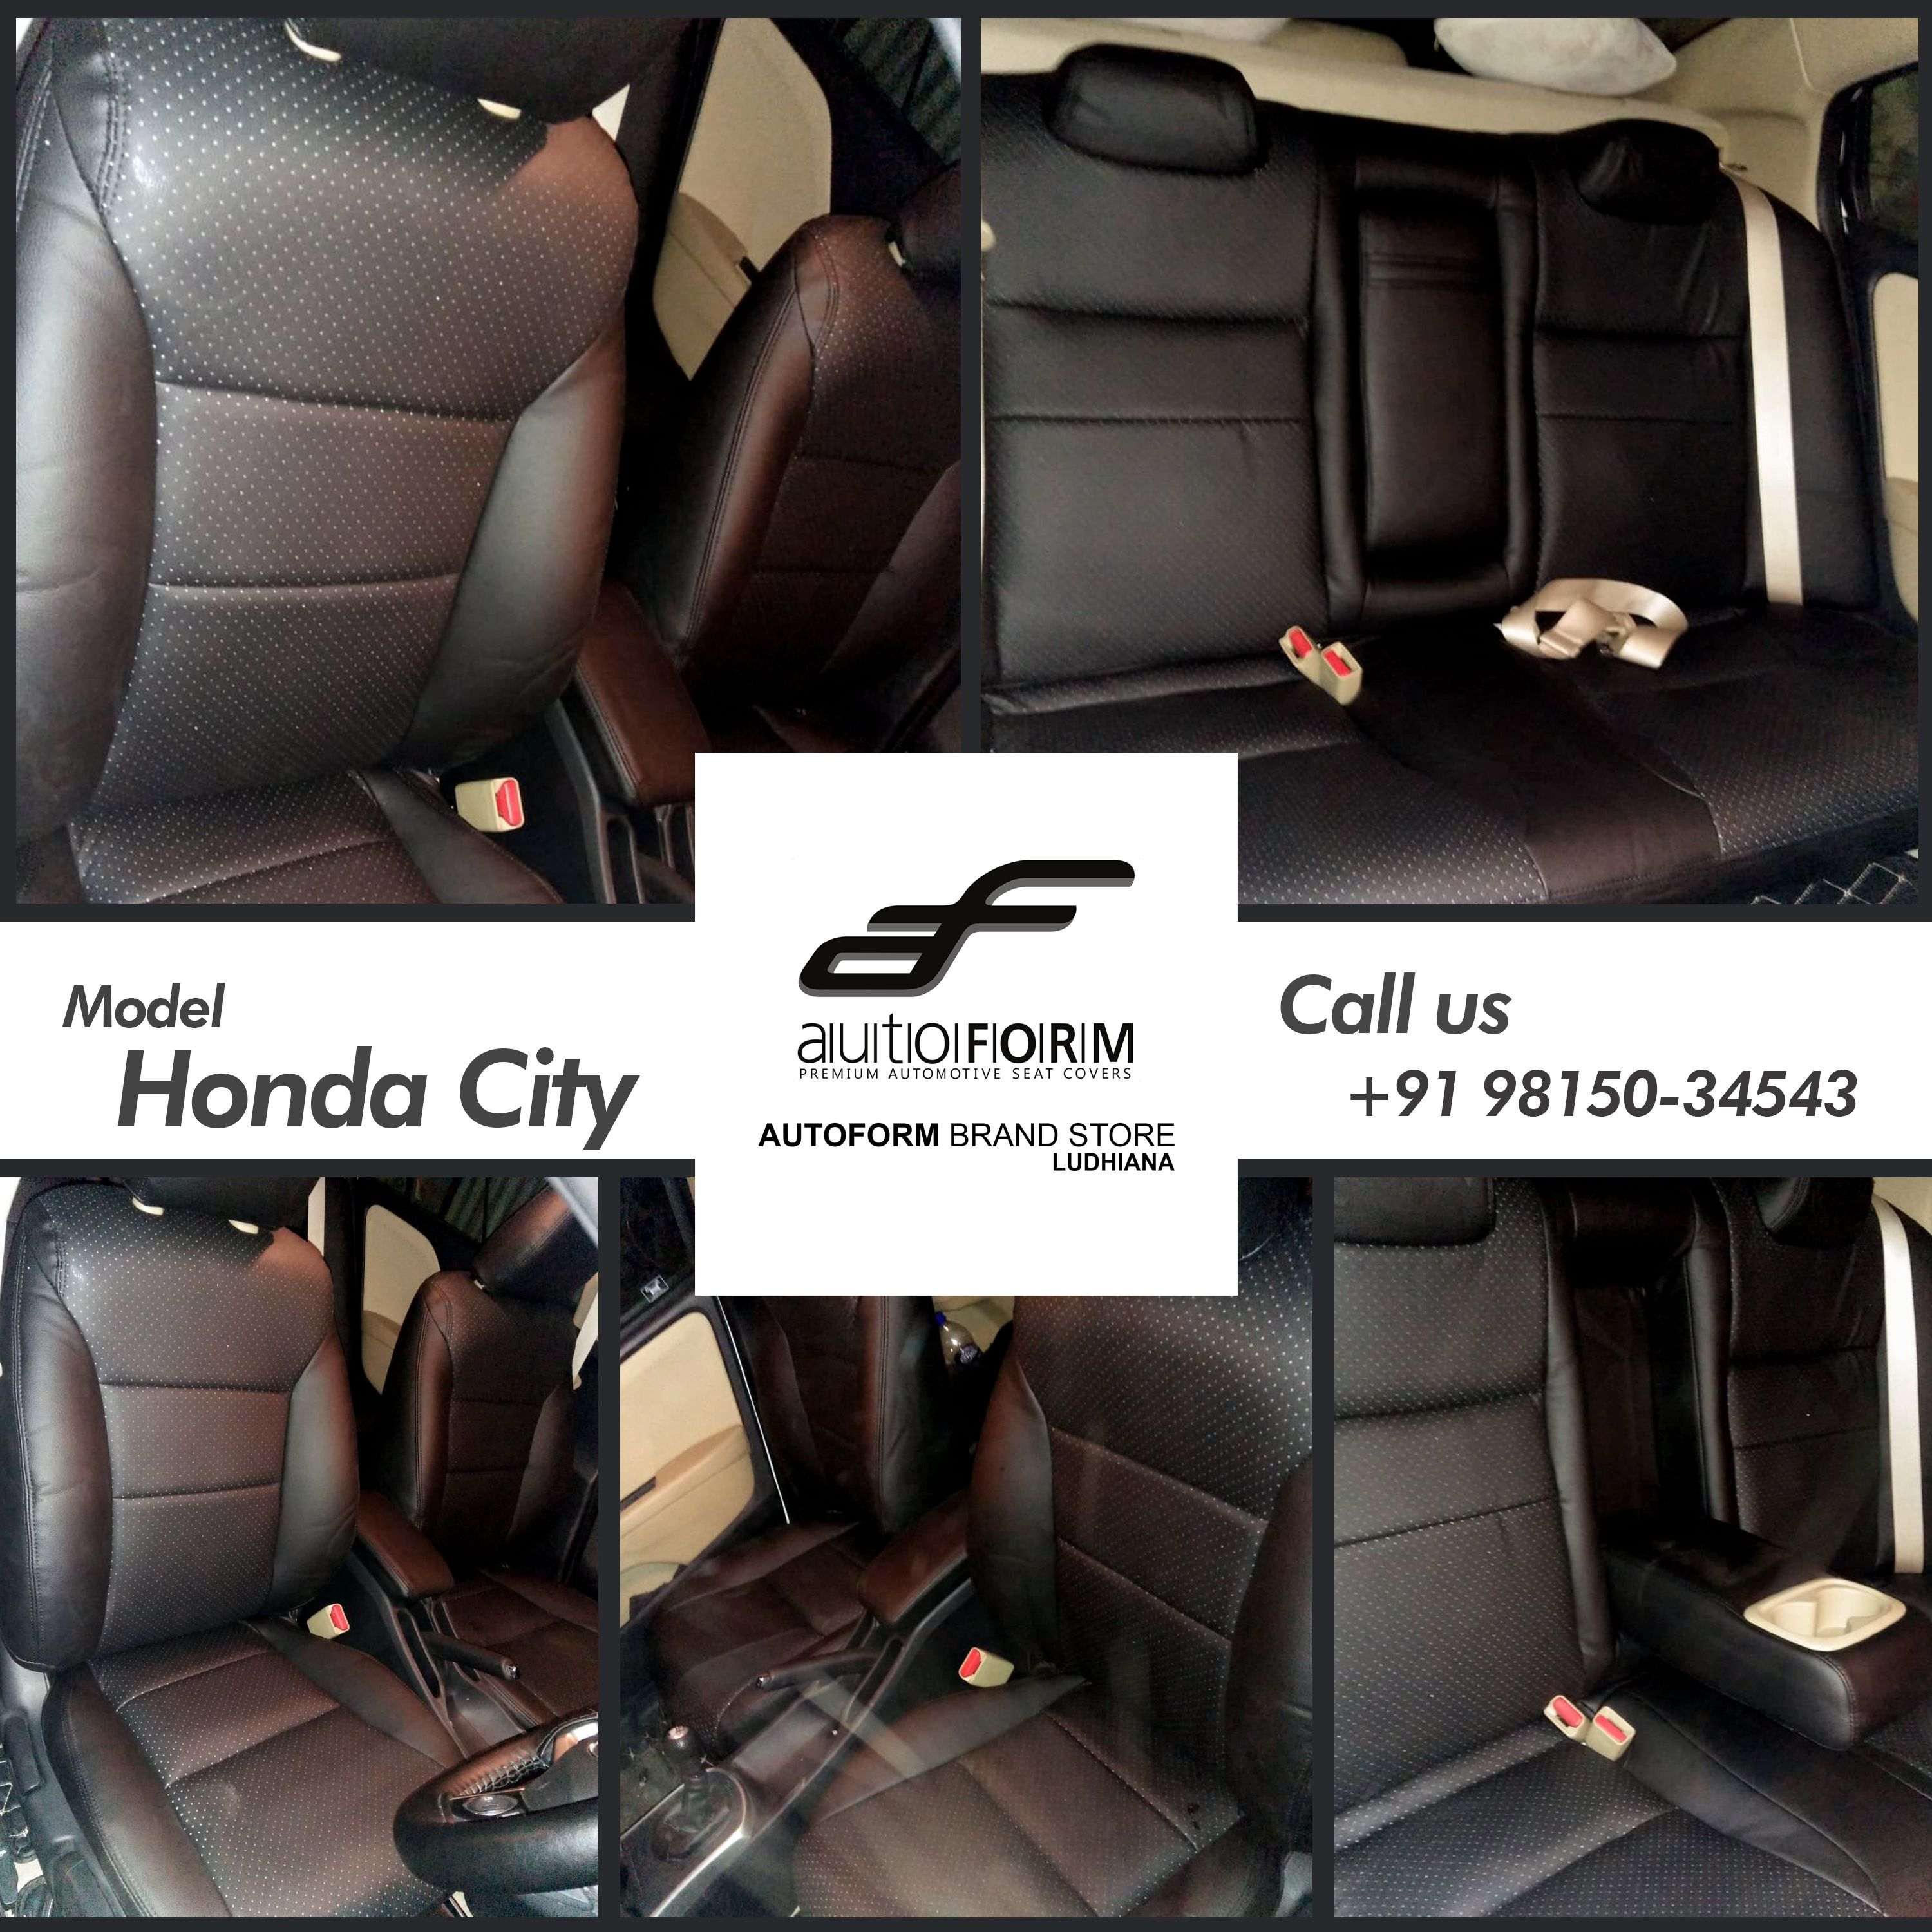 Honda City Is Final Ready To Let You Drive The Comfort With Luxury